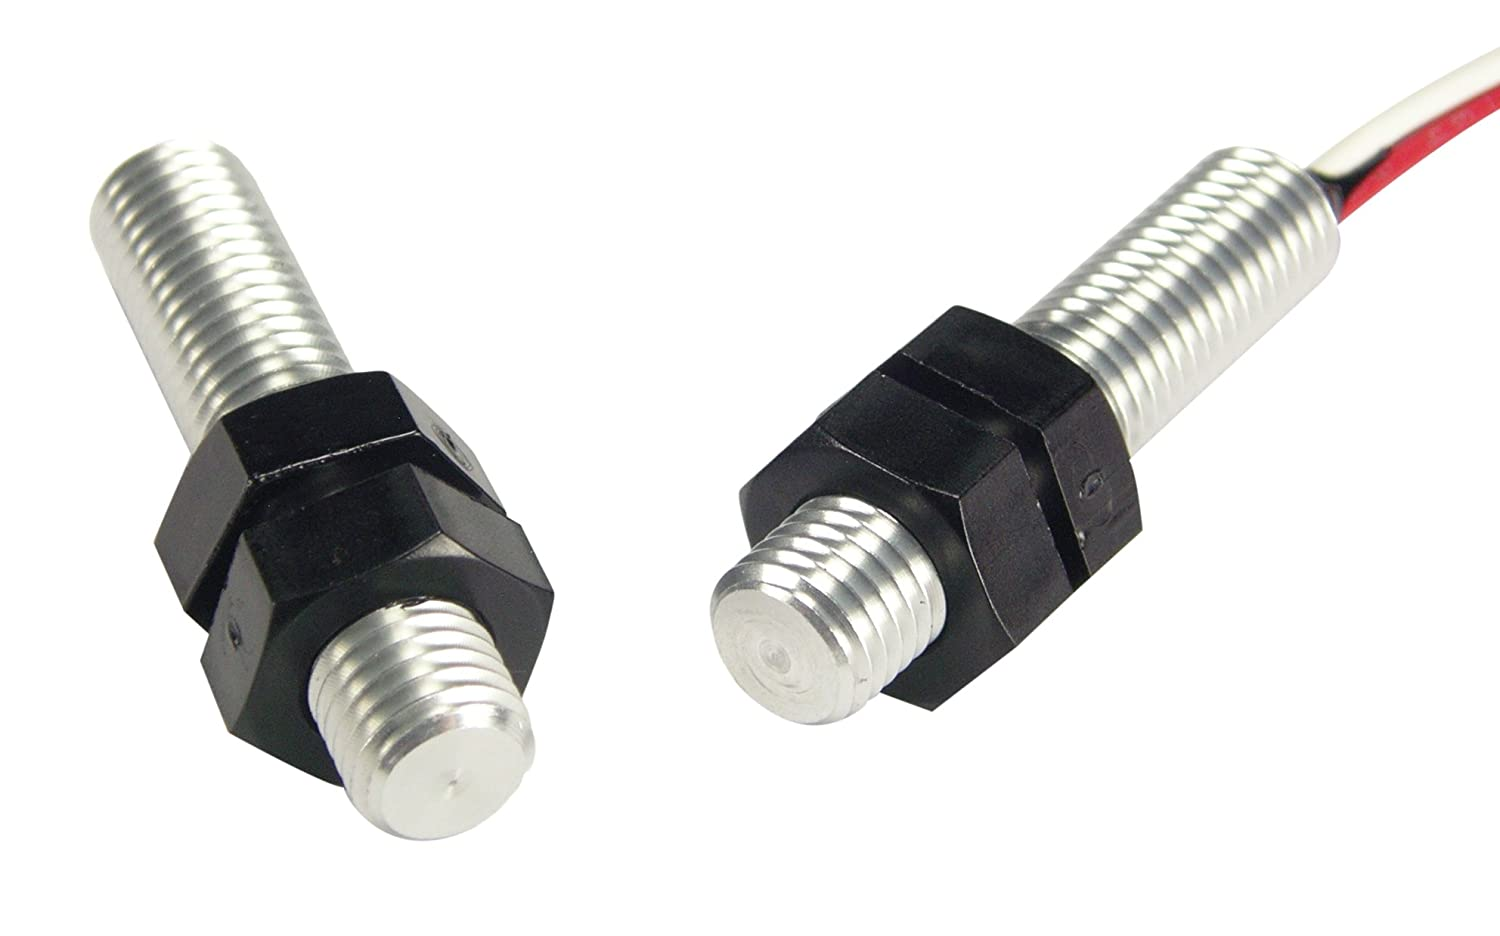 Reed Switch Developments Actuat 2451-1900-10K Corp Memphis 55% OFF Mall